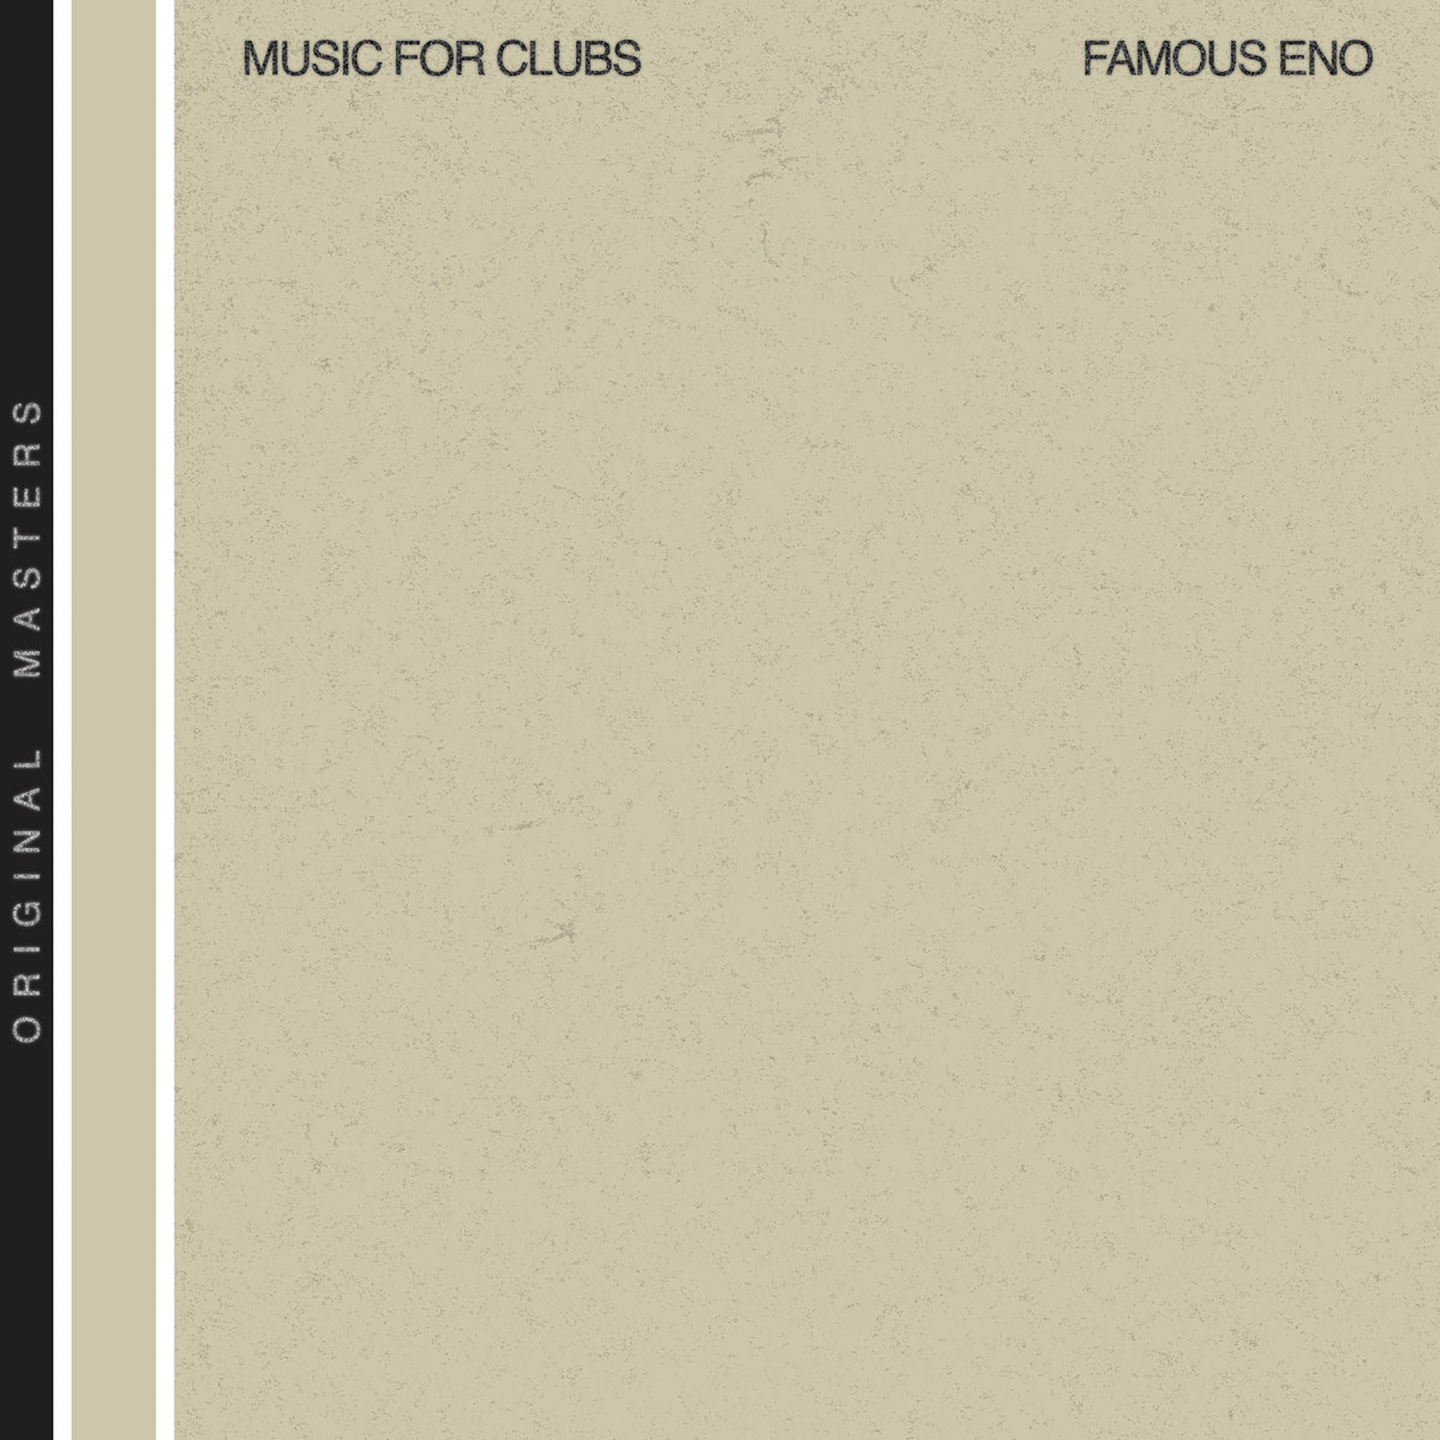 Ra Reviews Famous Eno Music For Clubs On Swing Ting Single